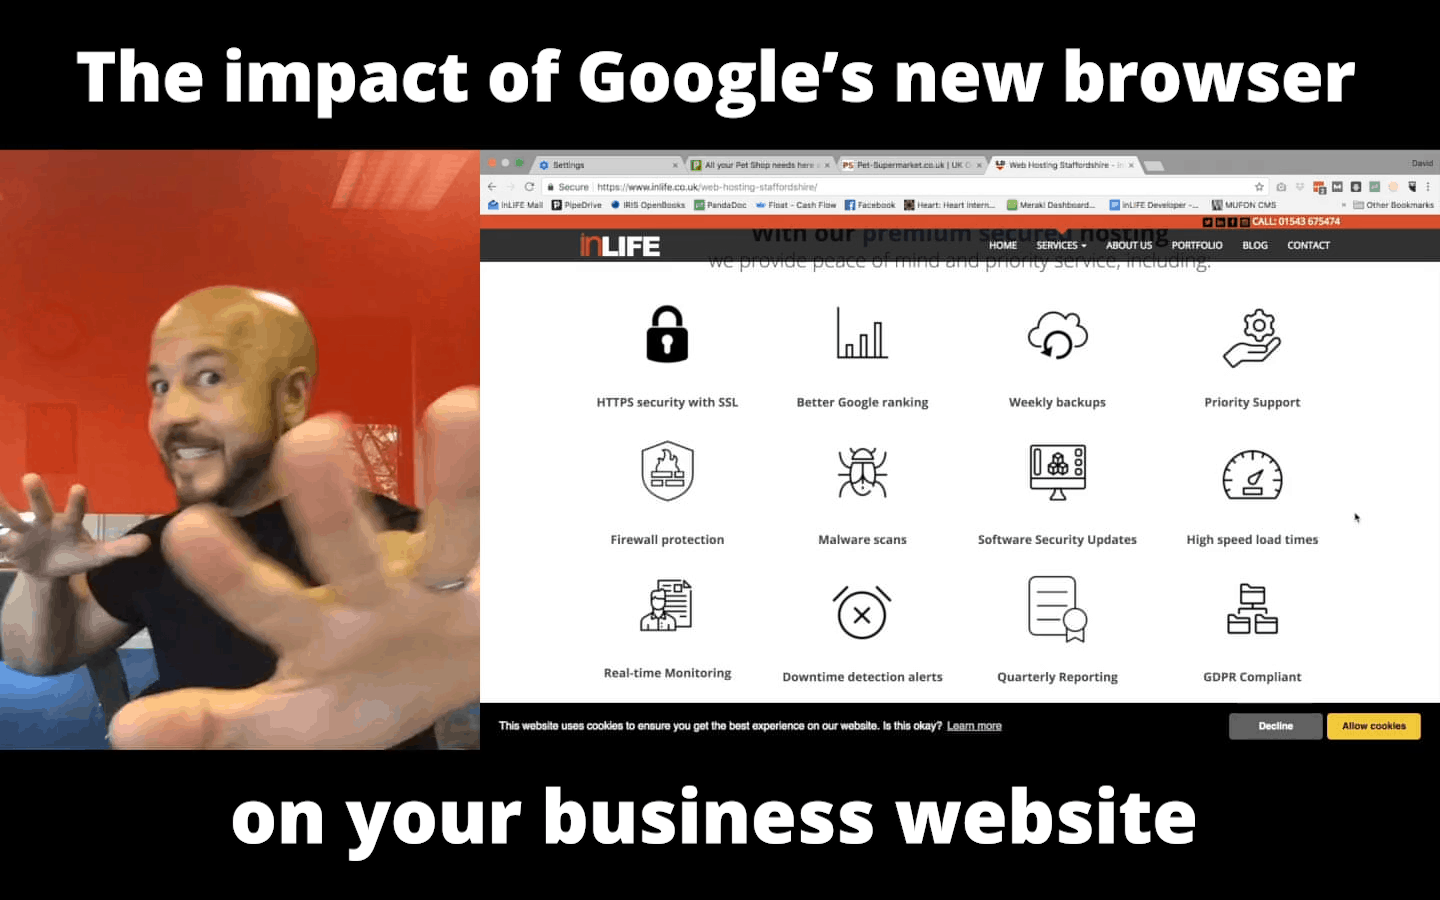 The single impact of Google's new browser on your business website